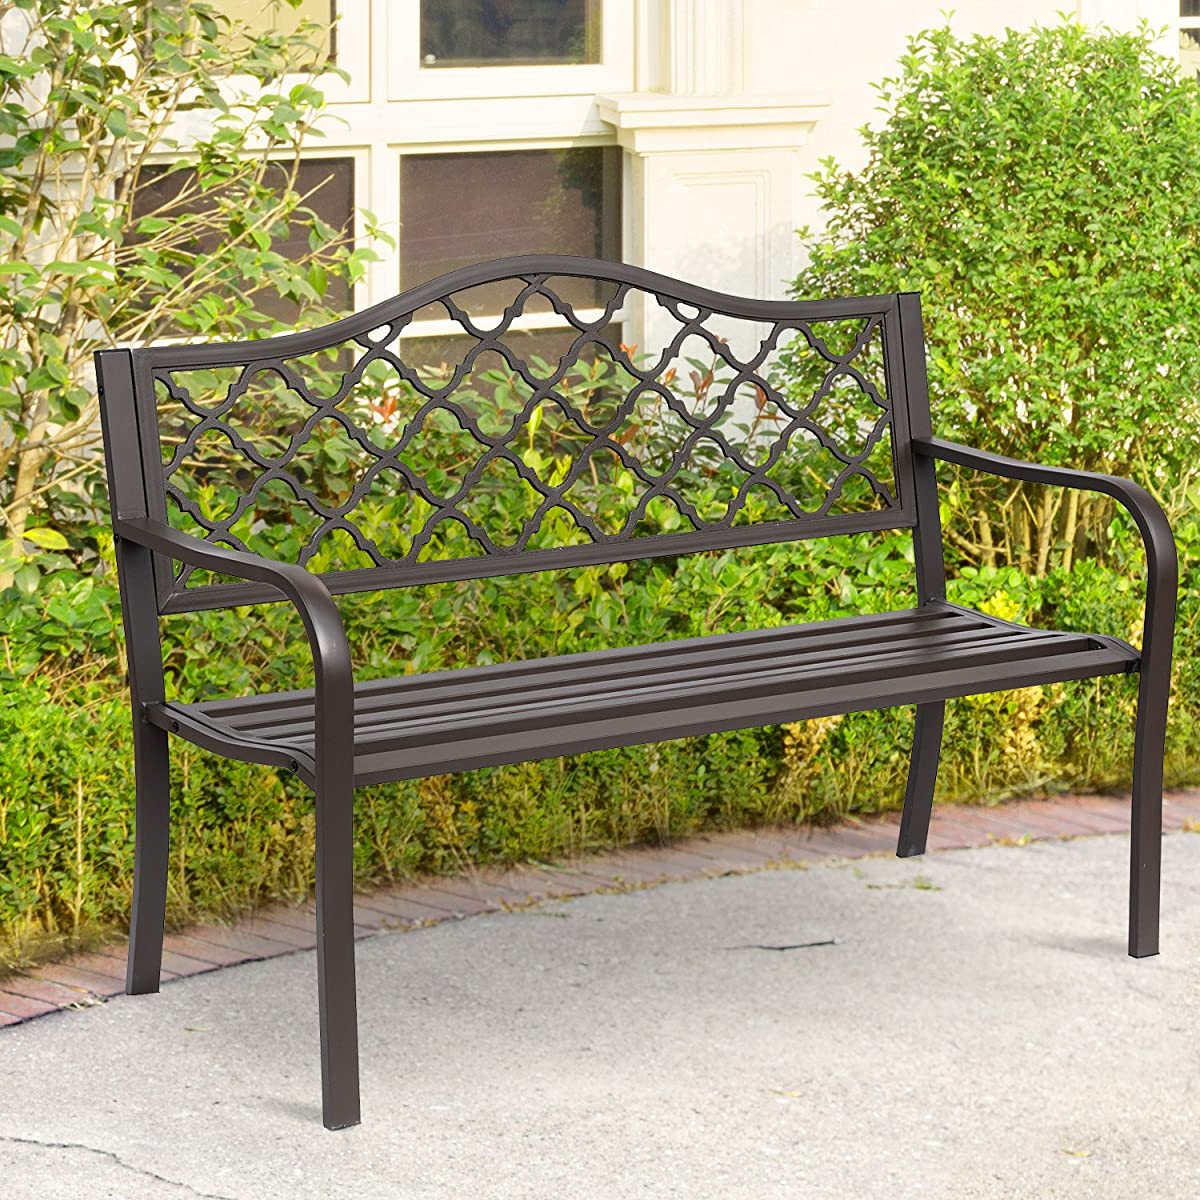 Outsunny Antique Style Outdoor Cast Iron Front Porch Bench Garden Chair